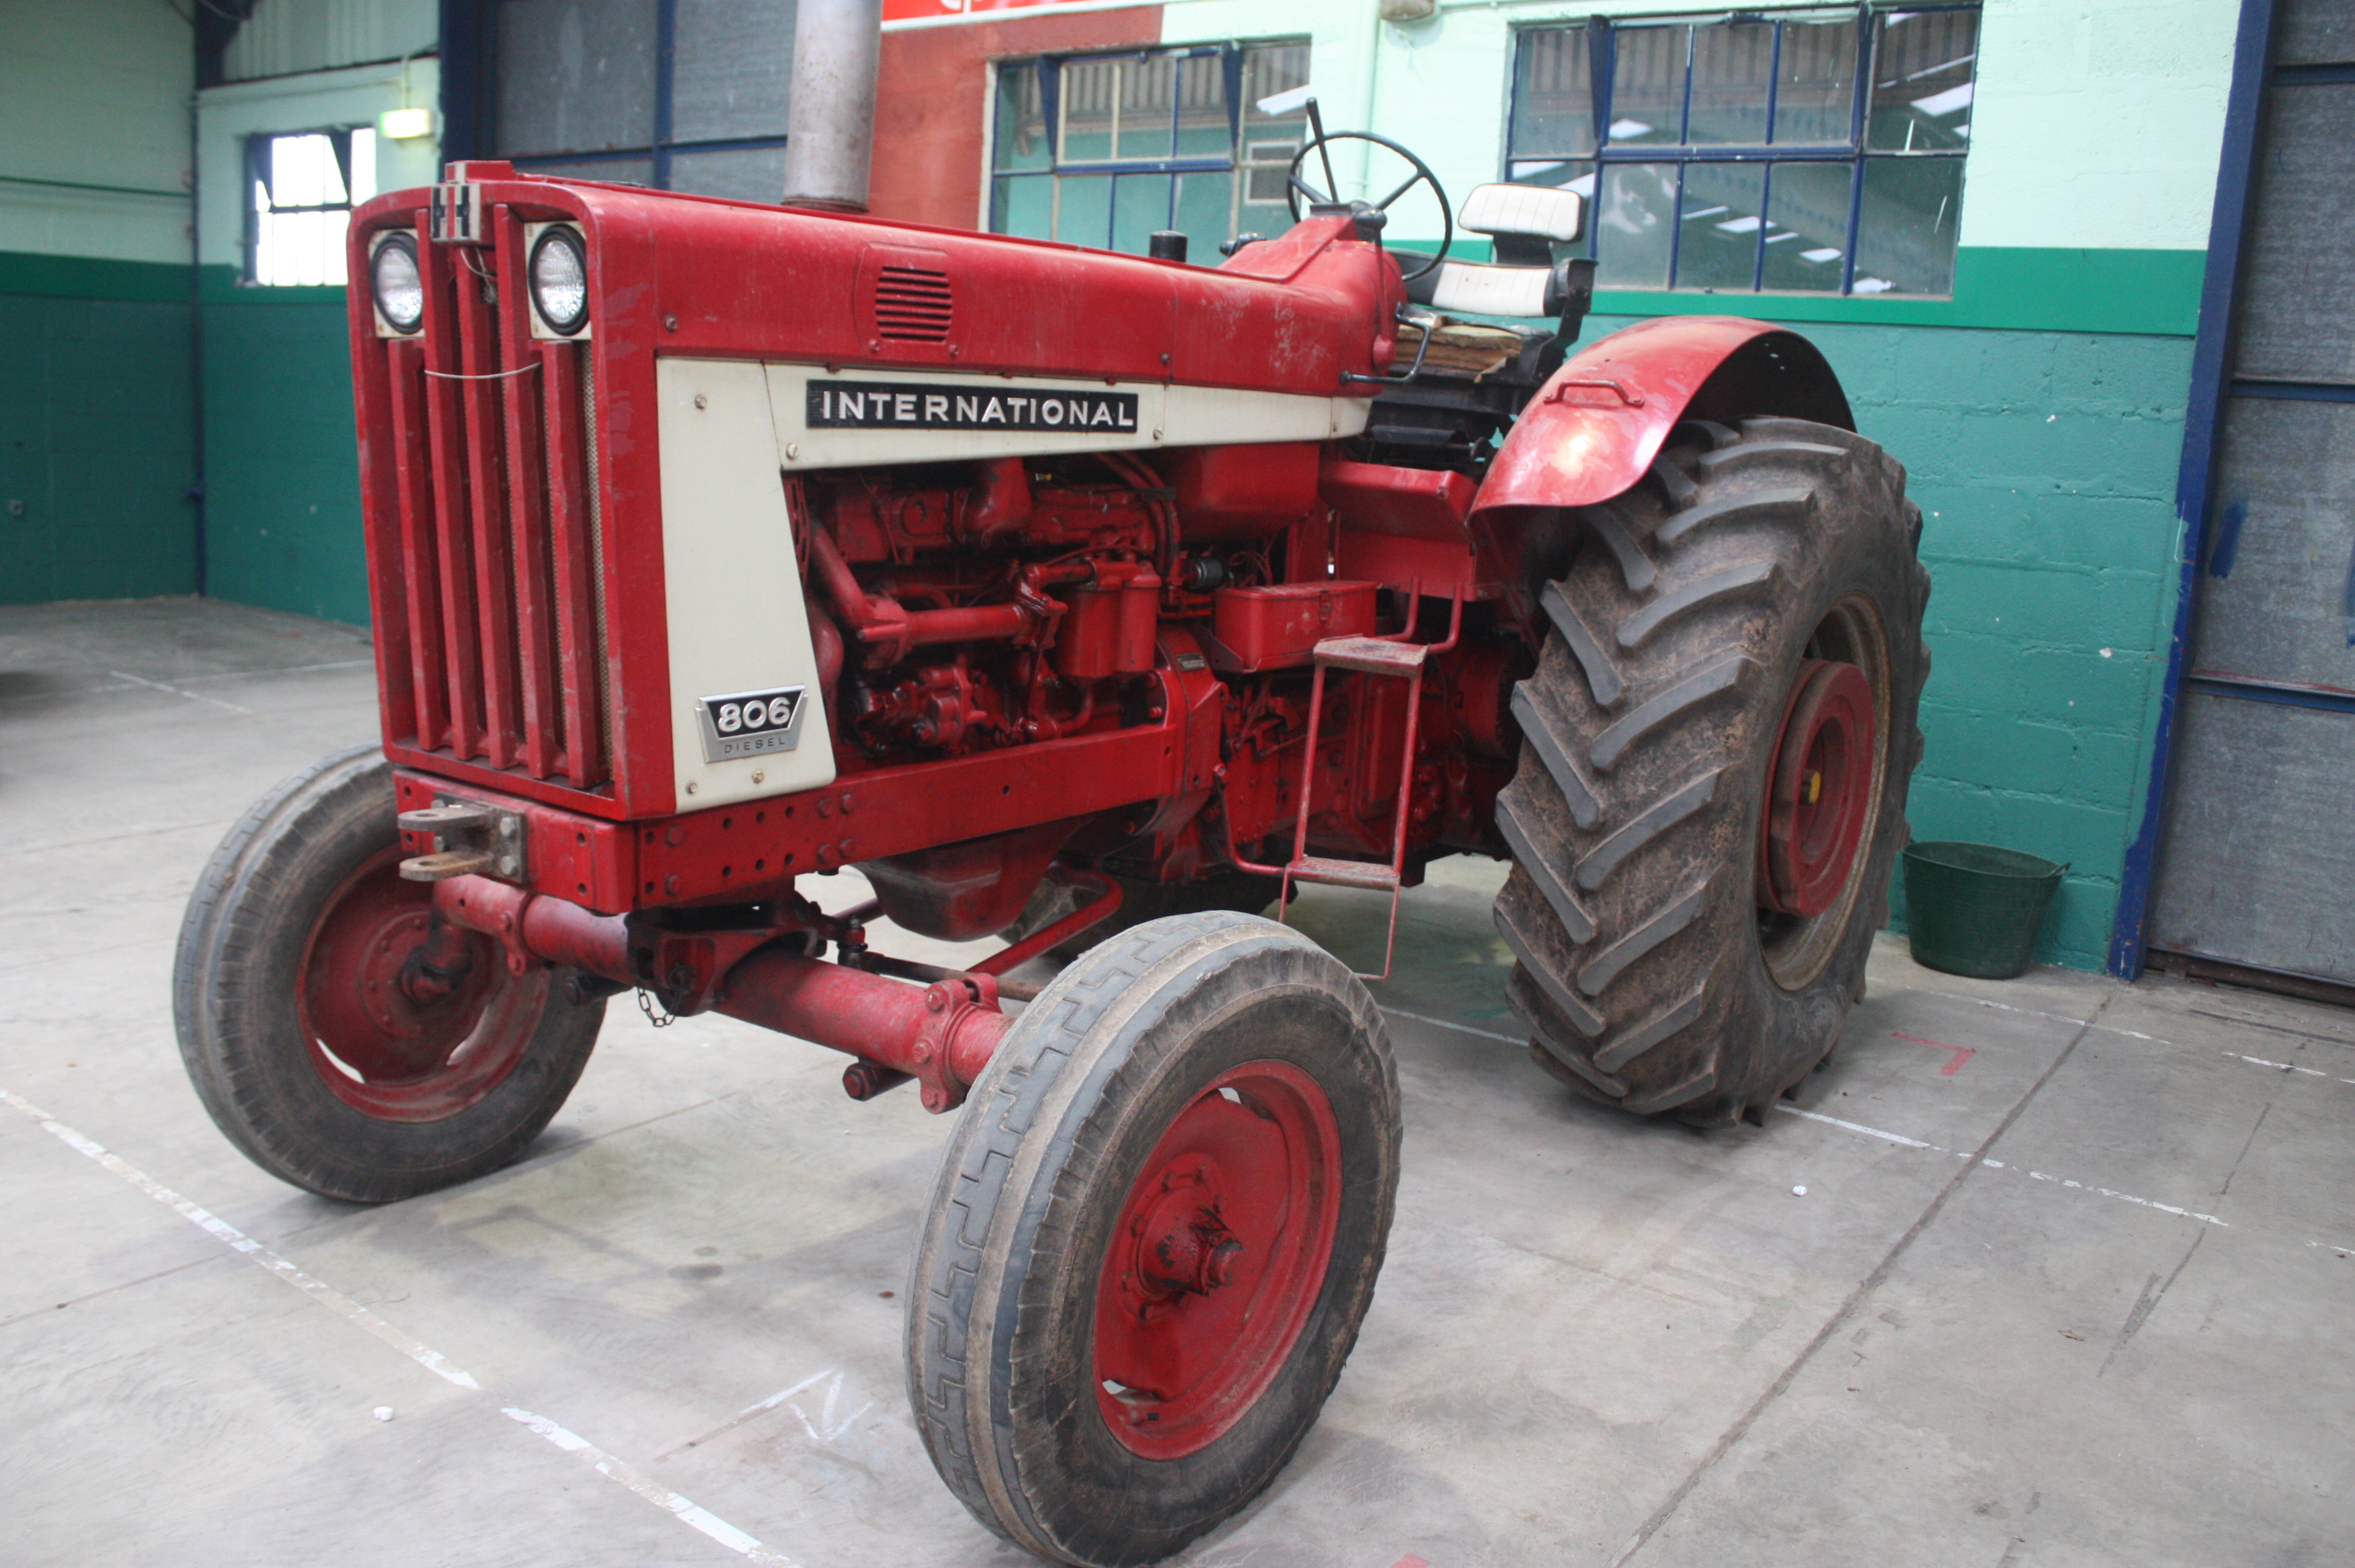 300 International Utility Diagram Electrical Wiring Diagrams For Ih 234 Parts Trusted Harvester Tractor